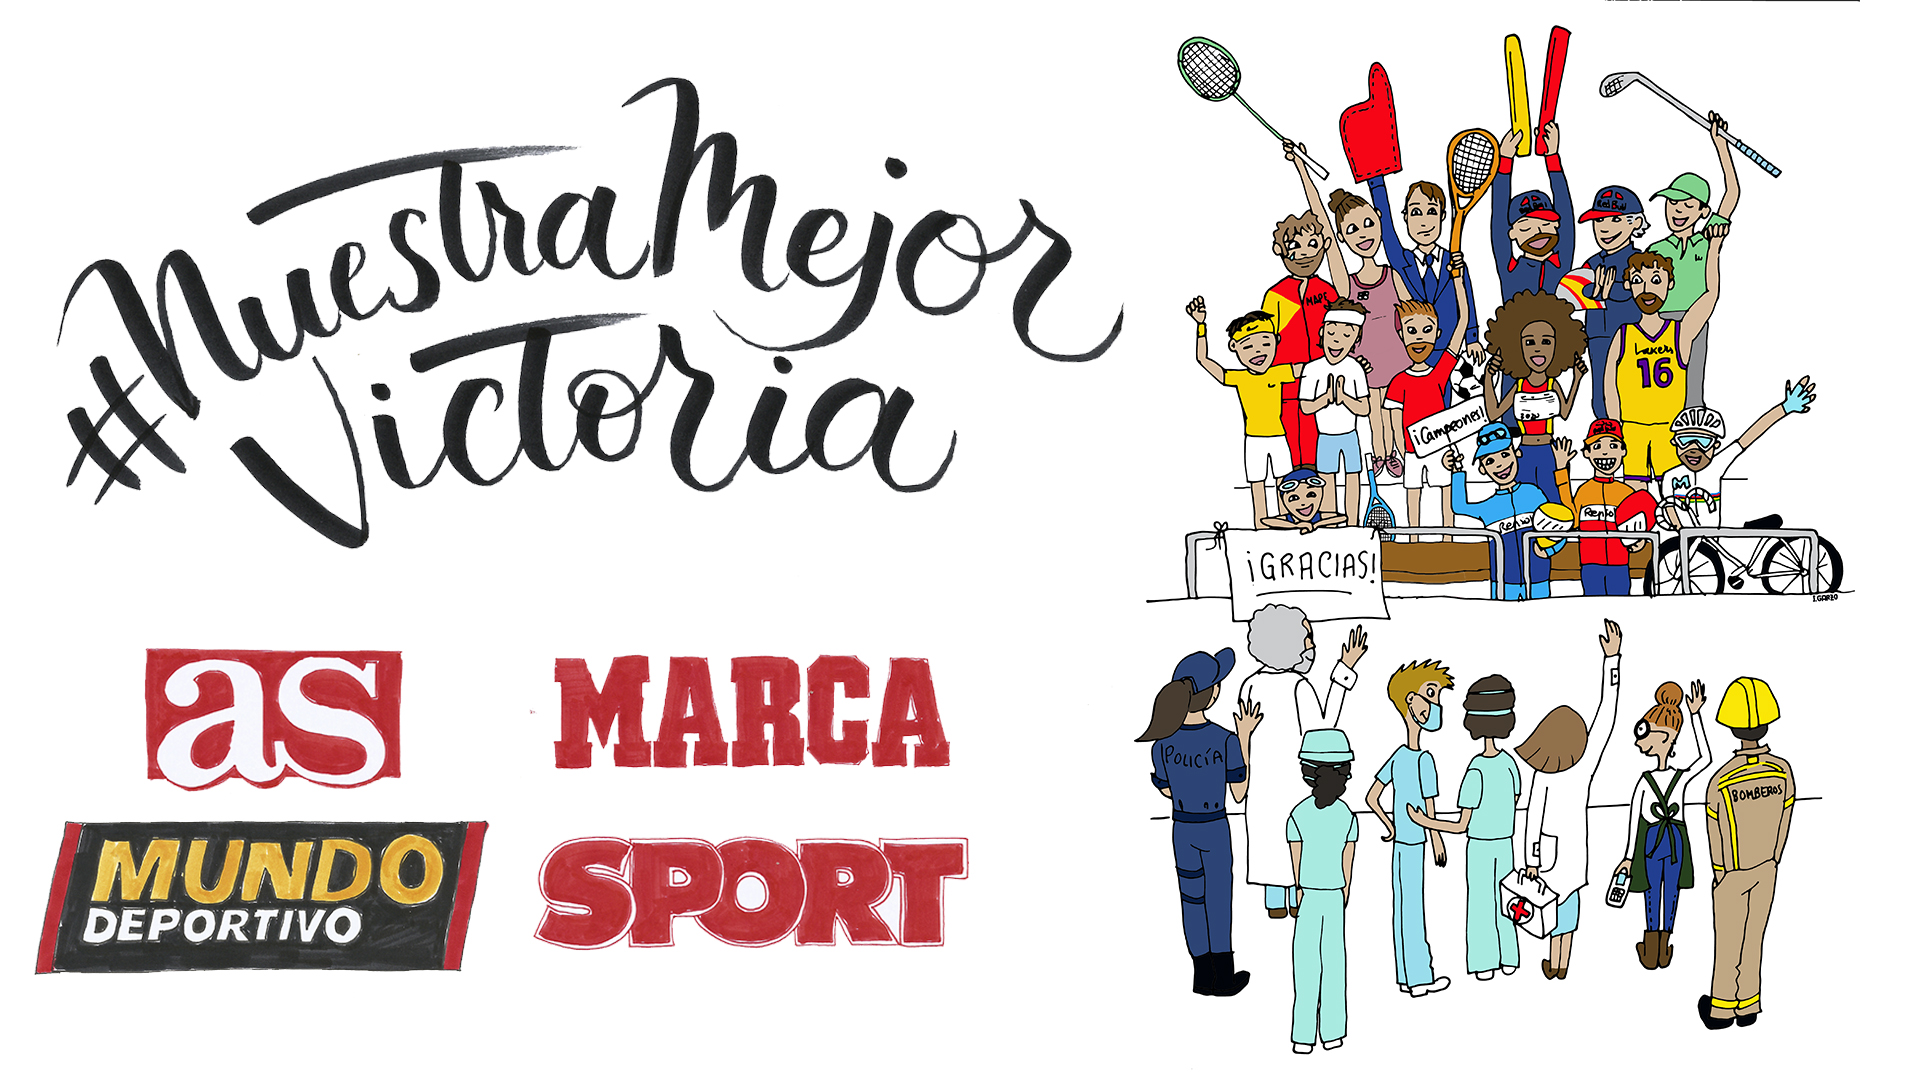 Spain's biggest sports newspapers join forces for the #NuestraMejorVictoria campaign 1